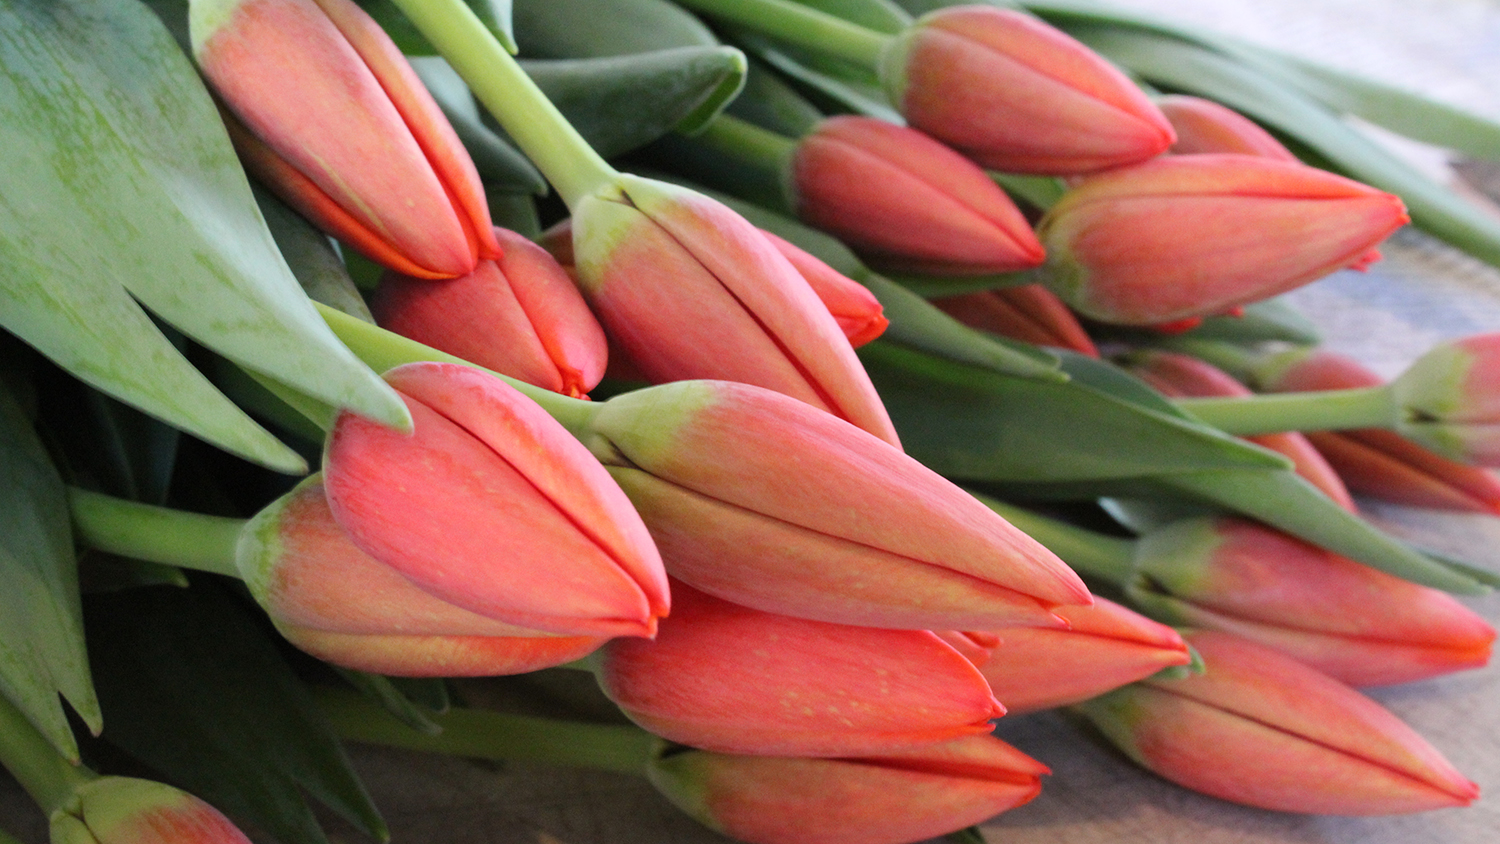 Closeup photo of a bunch of tulips about to open